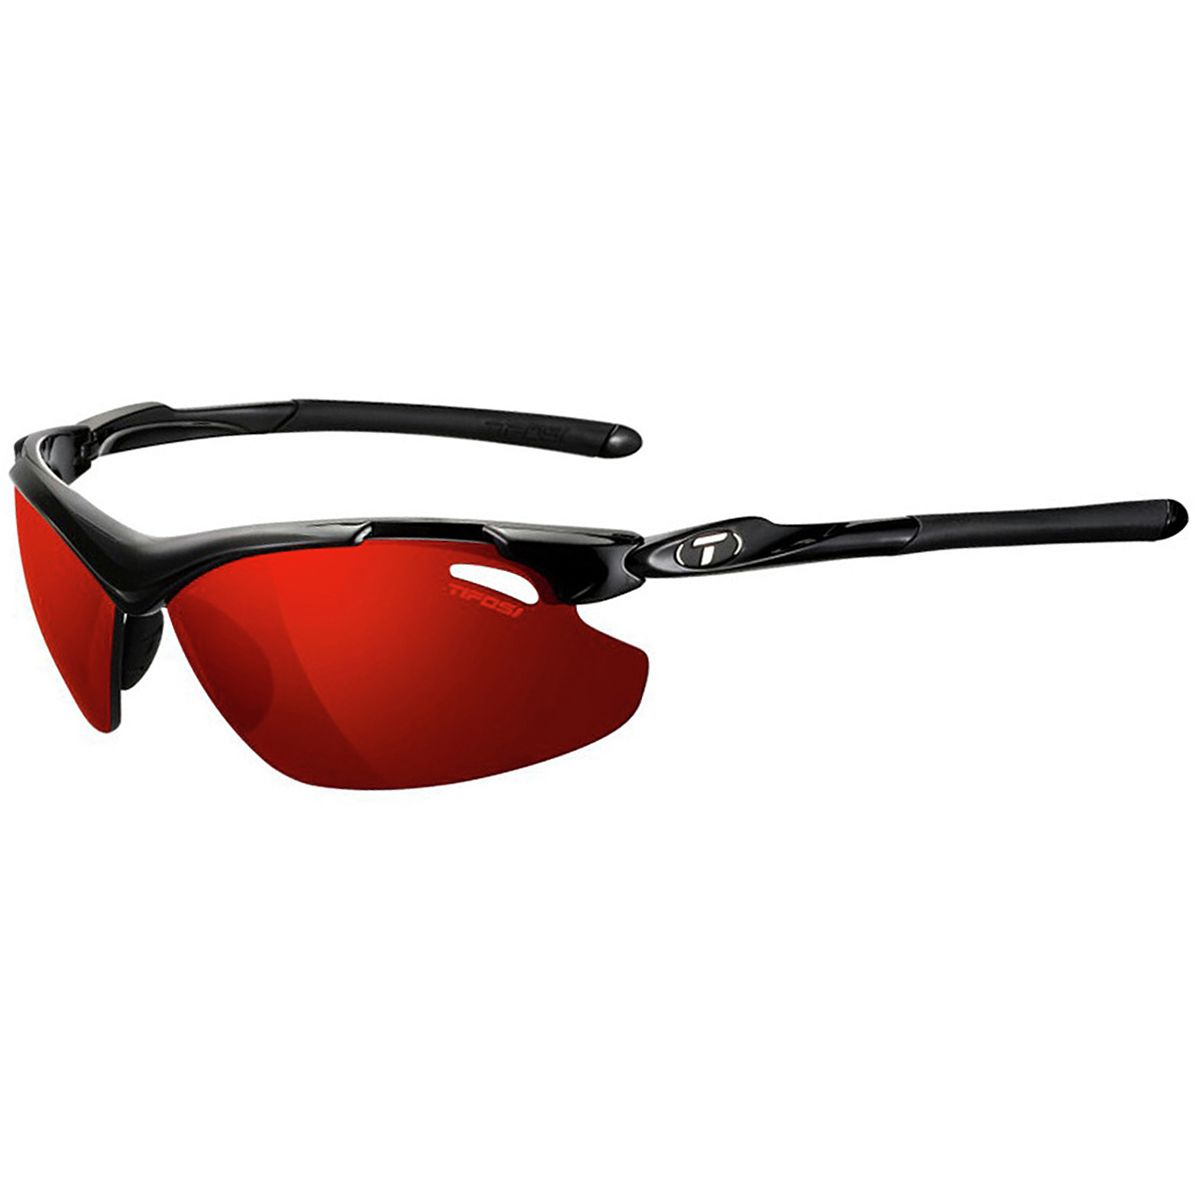 Interchangeable Sunglasses  tifosi optics tyrant 2 0 sunglasses compeive cyclist